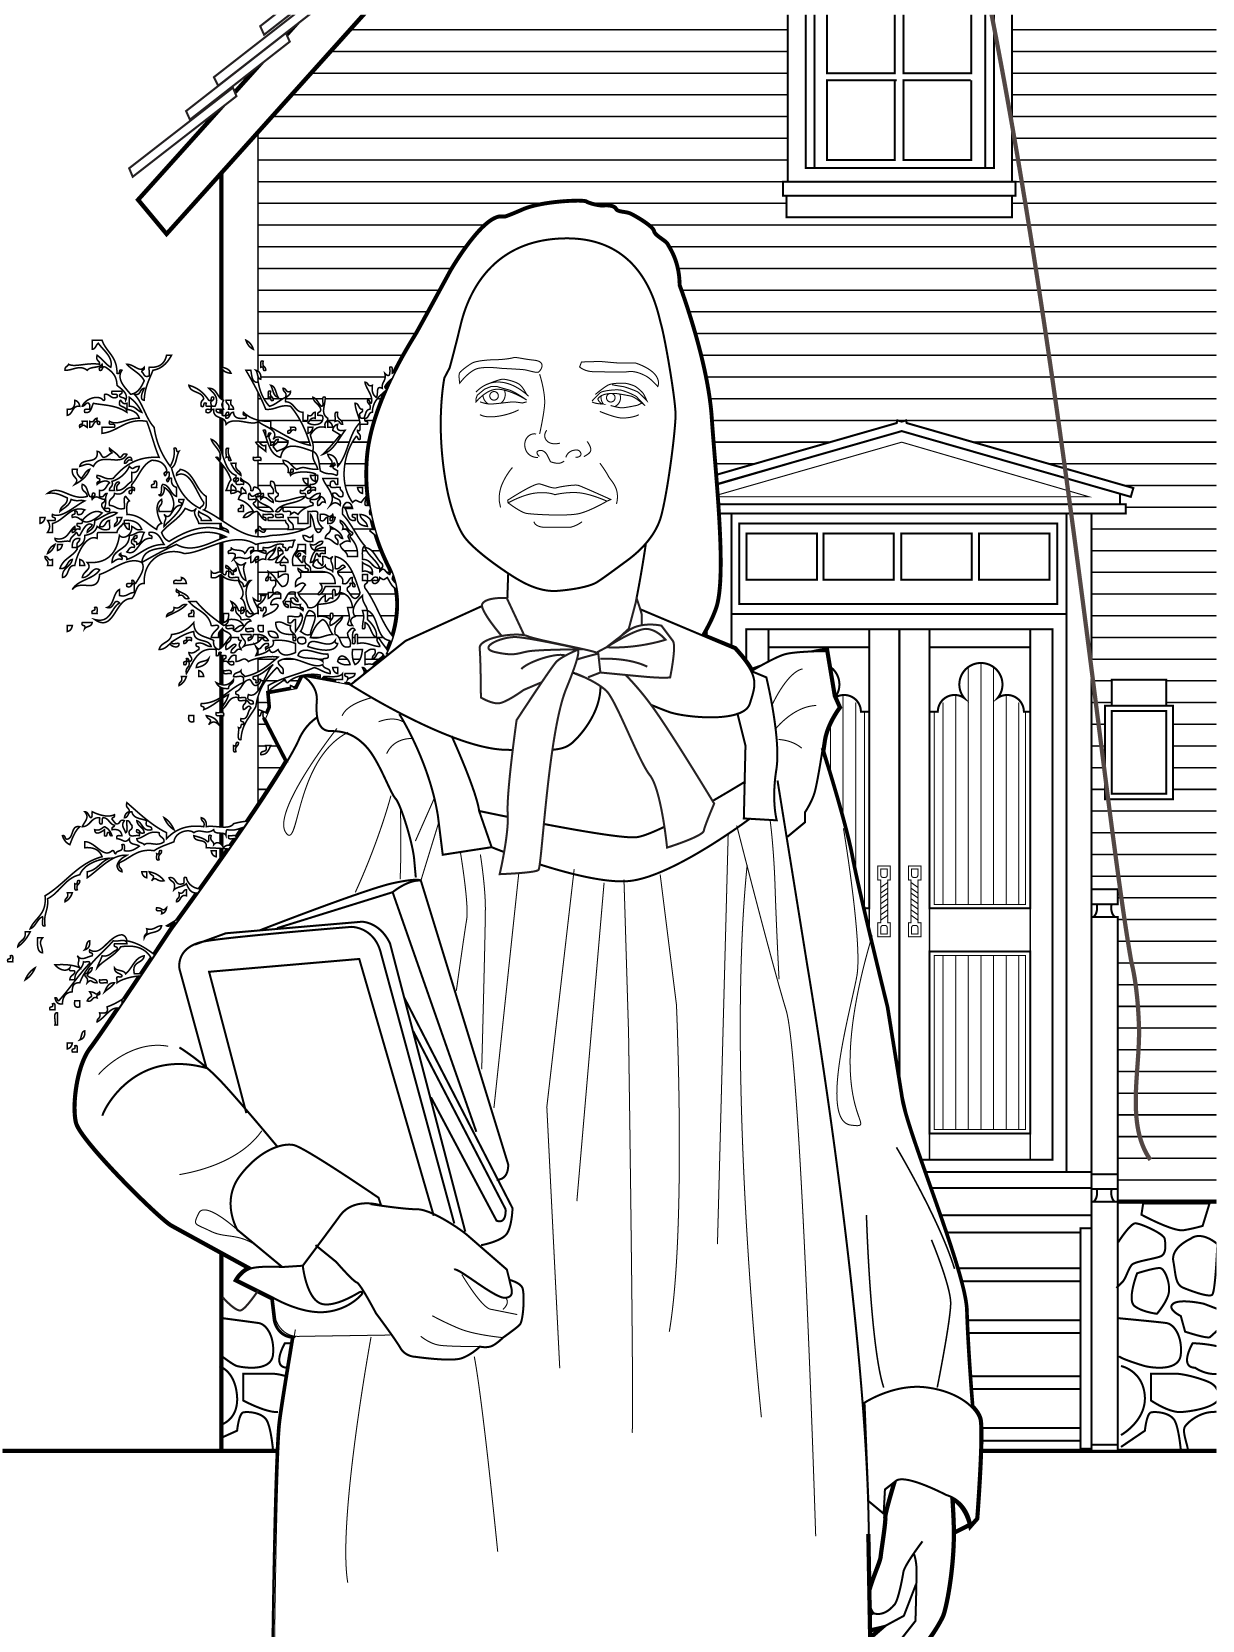 Mary Ingalls Coloring Page Coloring Pages House Colouring Pages Free Coloring Pages